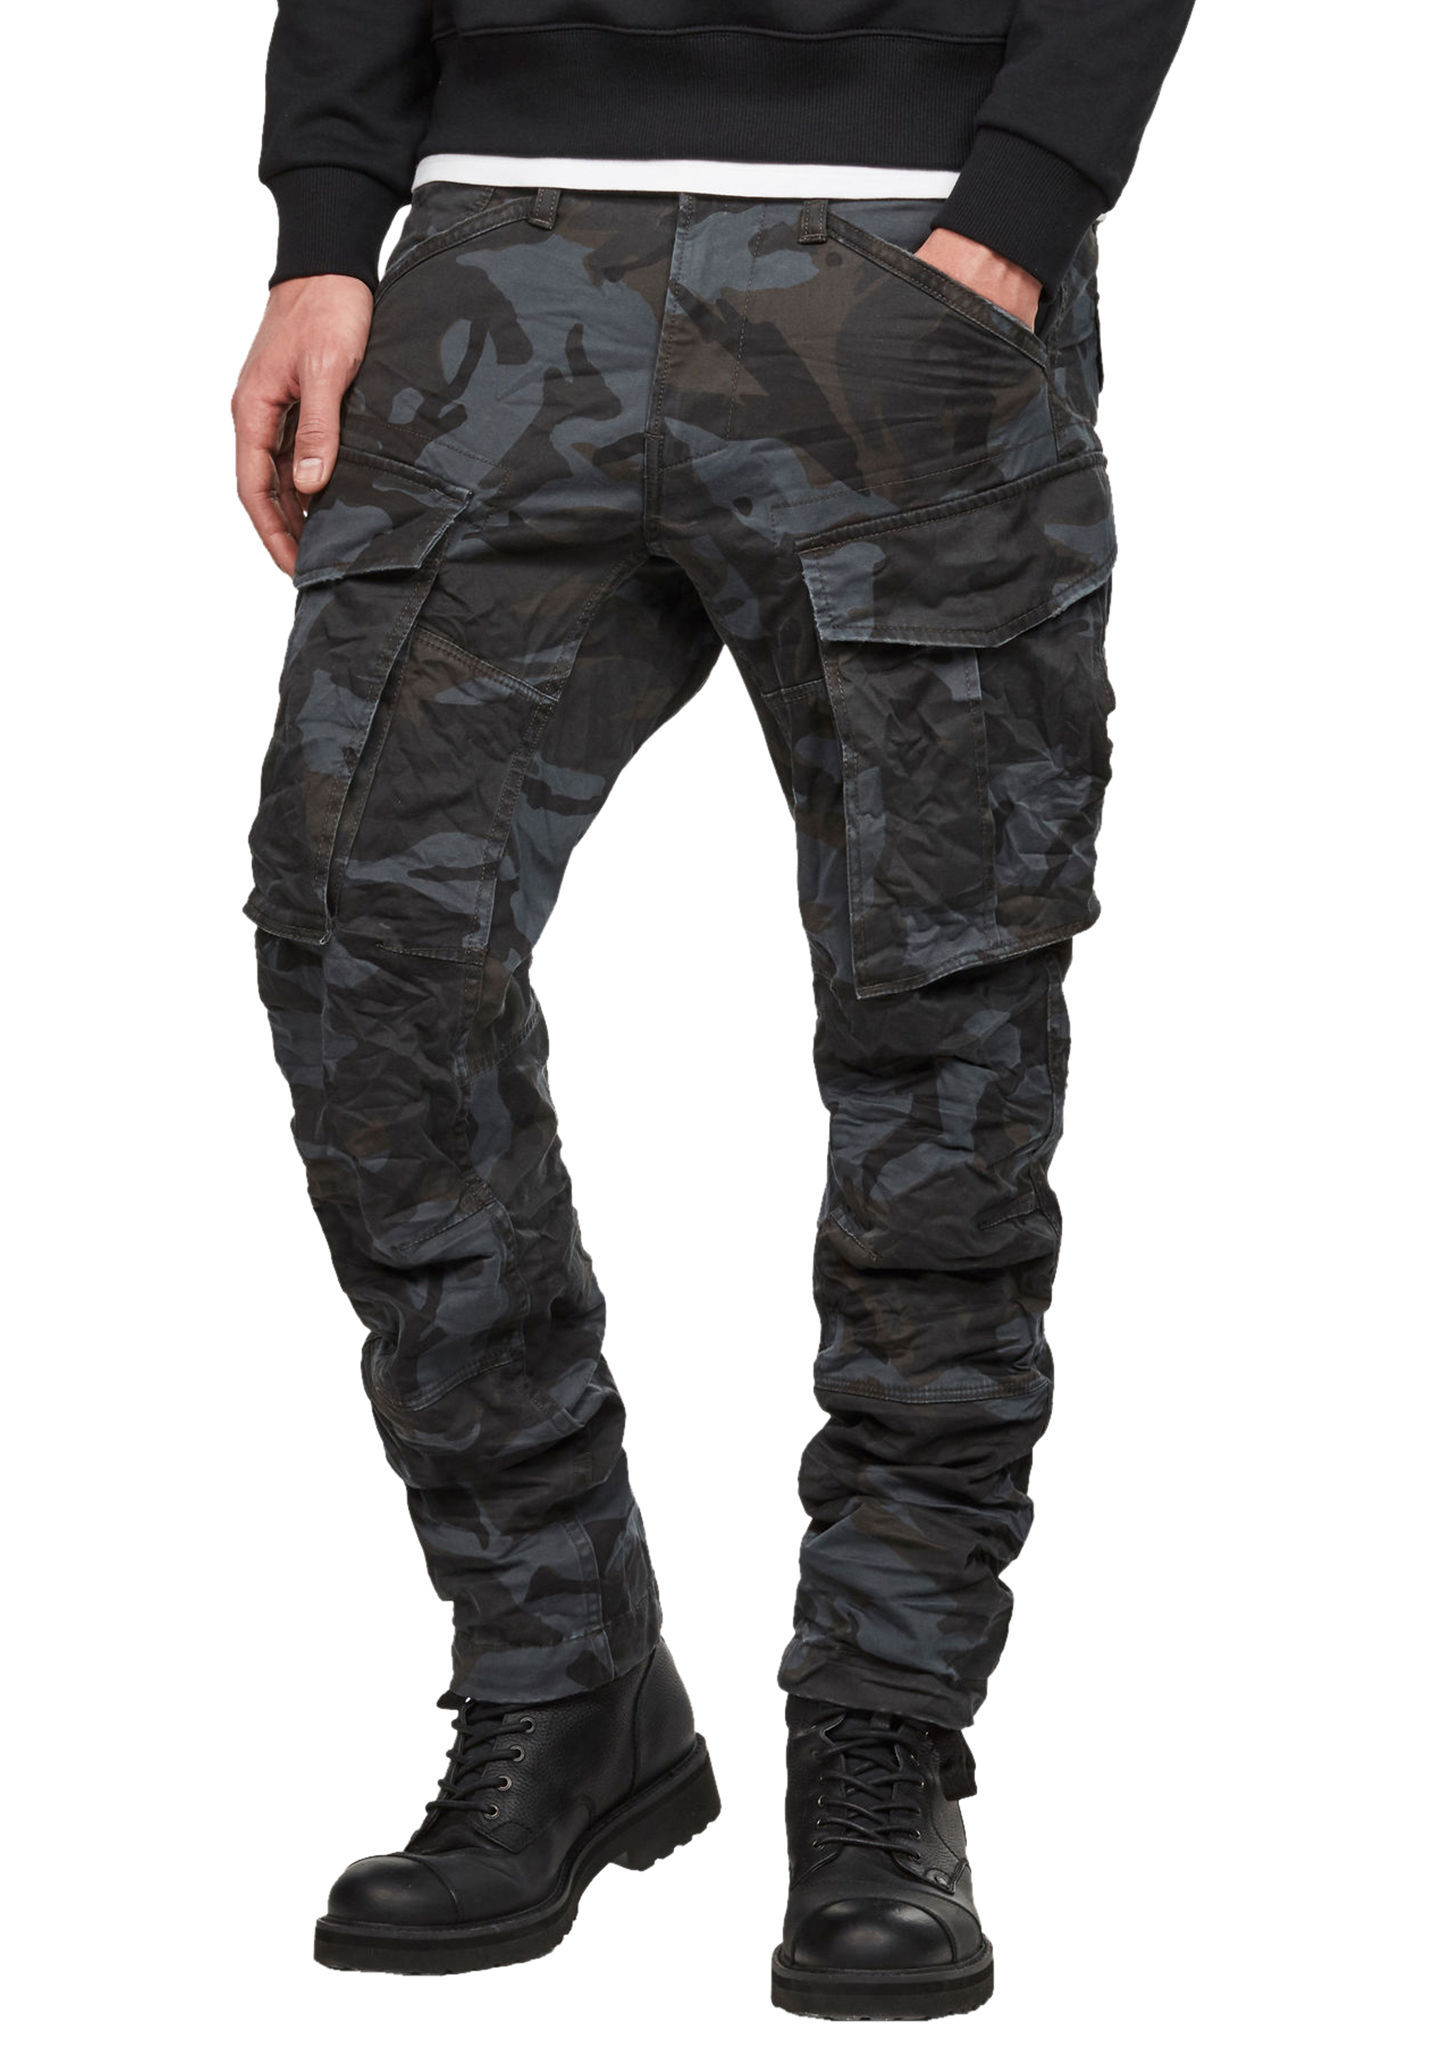 02a449b10dce G-STAR Rovic 3D Straight Tapered - Cargo Pants for Men - Grey - Planet  Sports